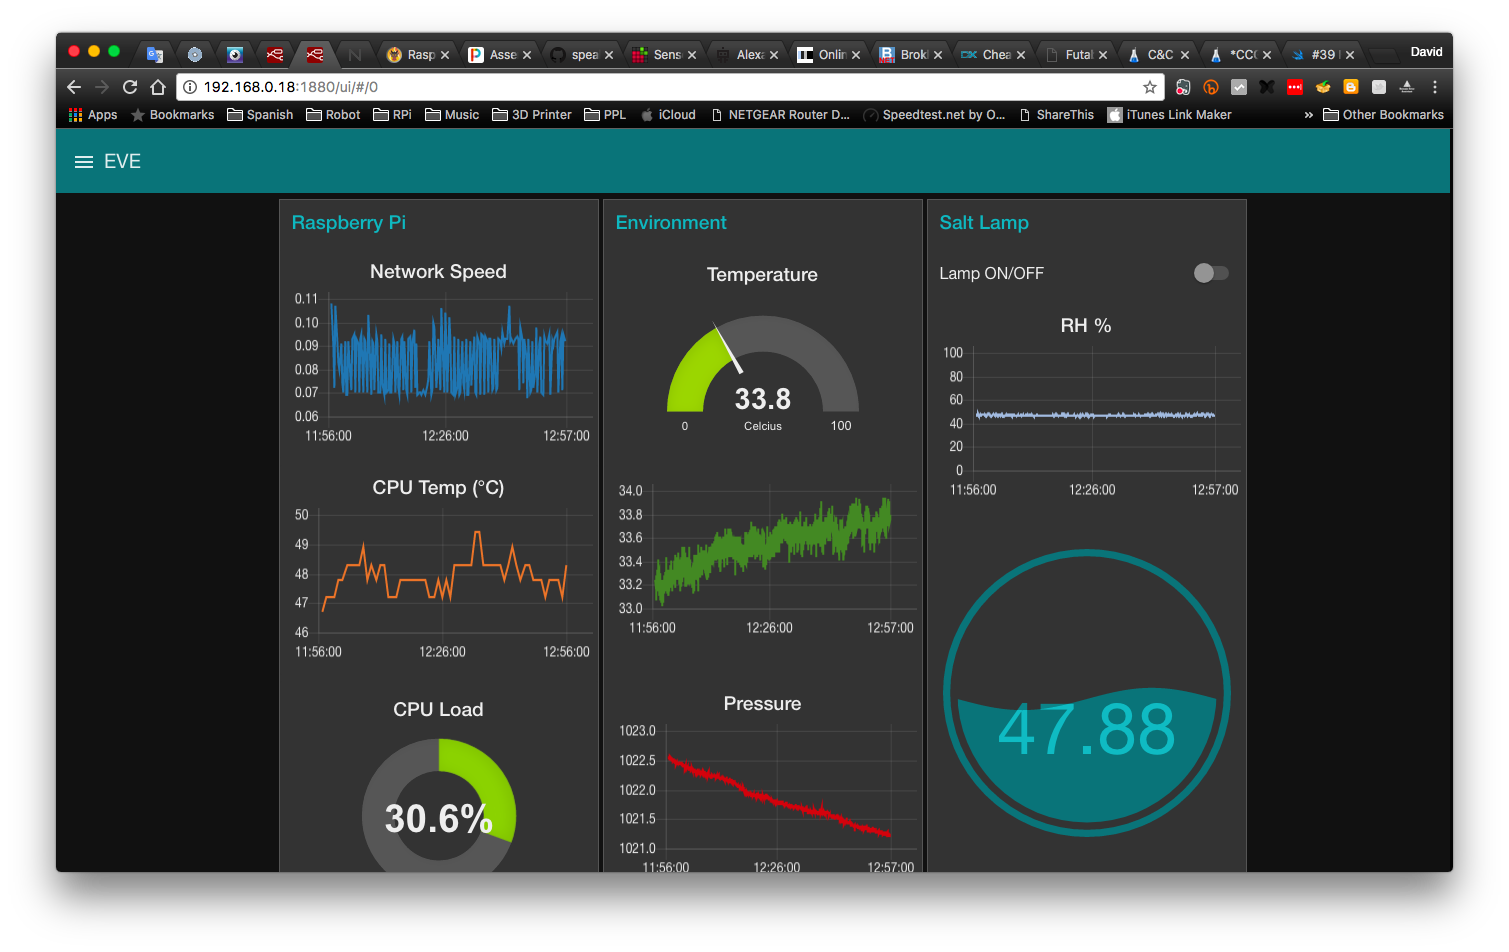 Reefwing Robotics: Node Red Dashboard for Raspberry Pi